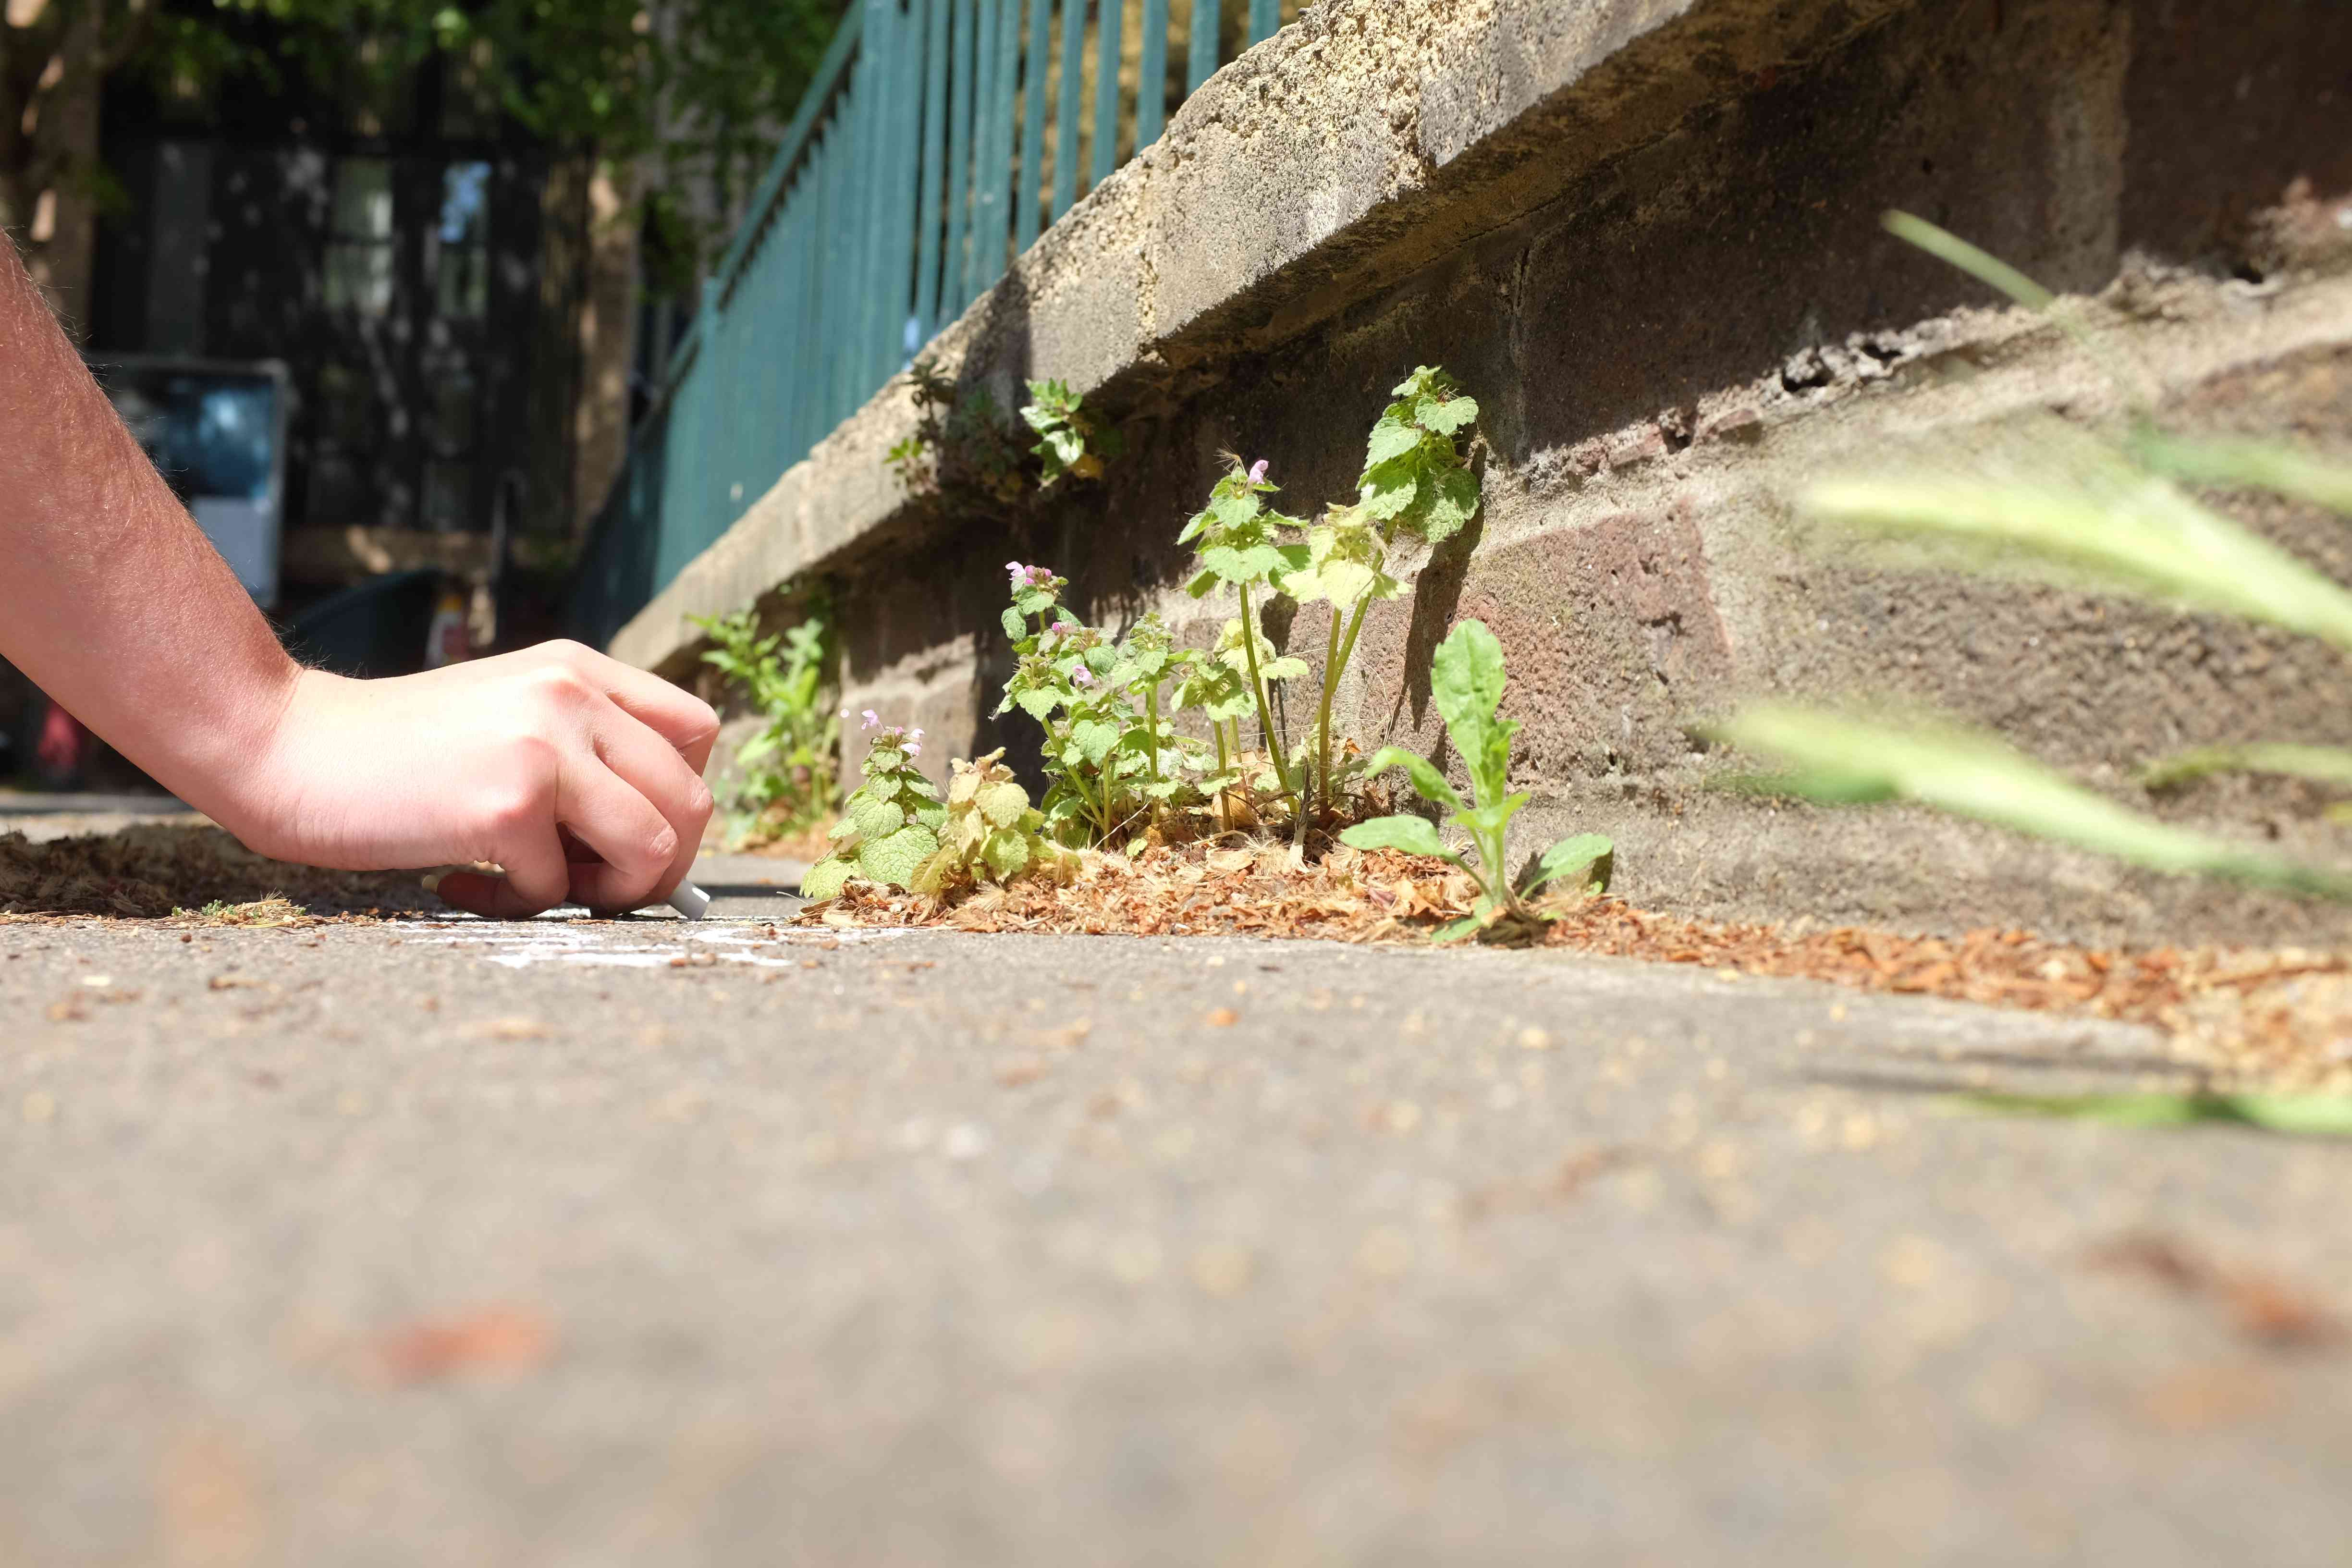 Sophie Leguil chalking the name of a plant on a sidewalk